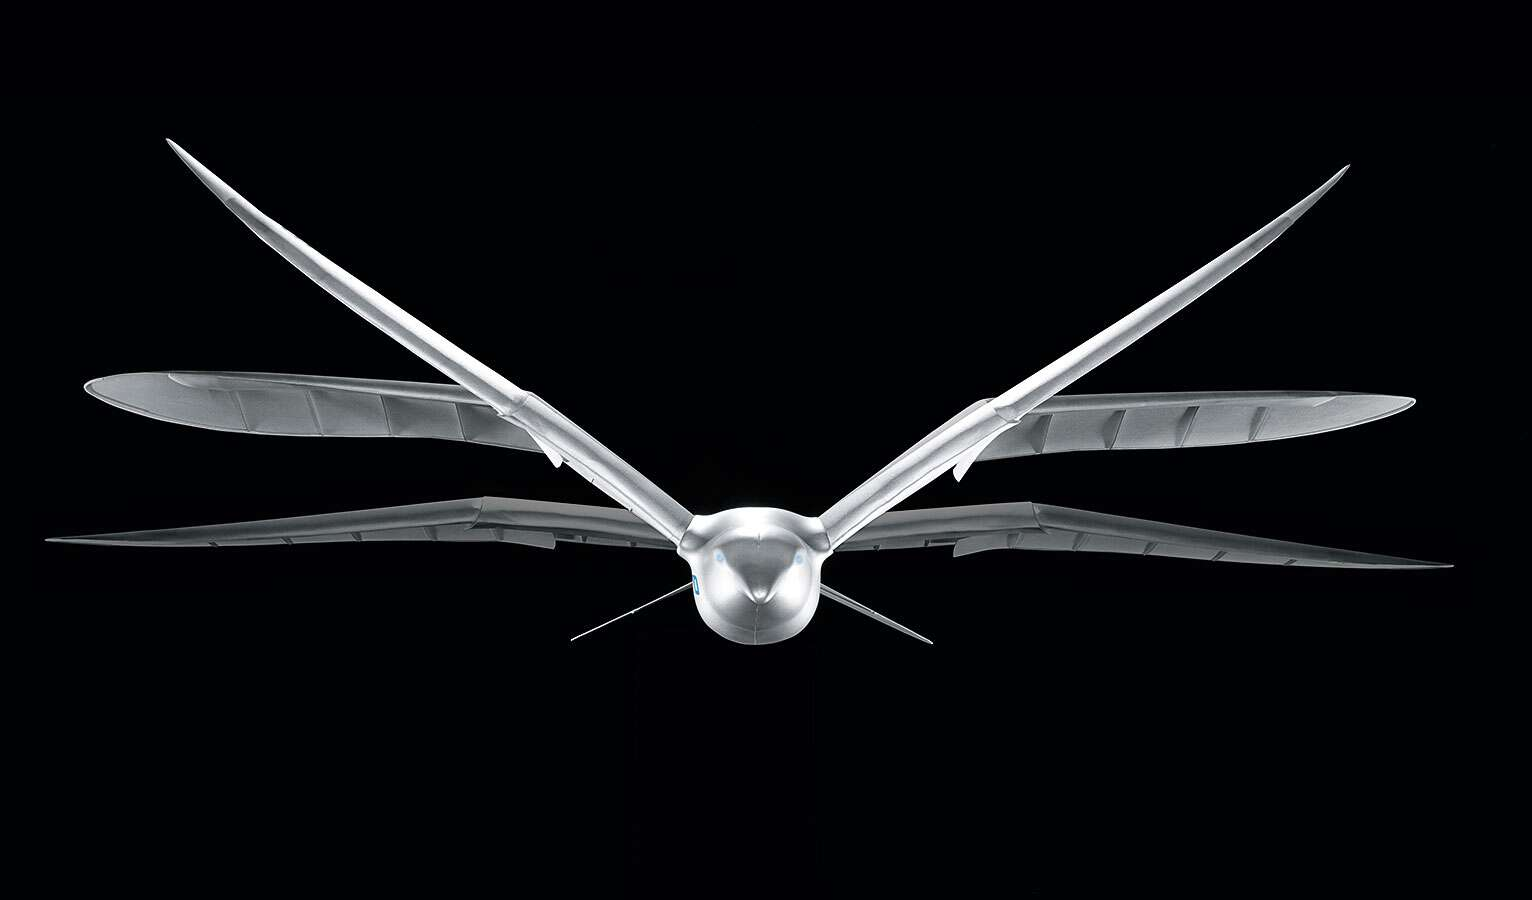 ... and active wing rotation modelled on the bionic SmartBird